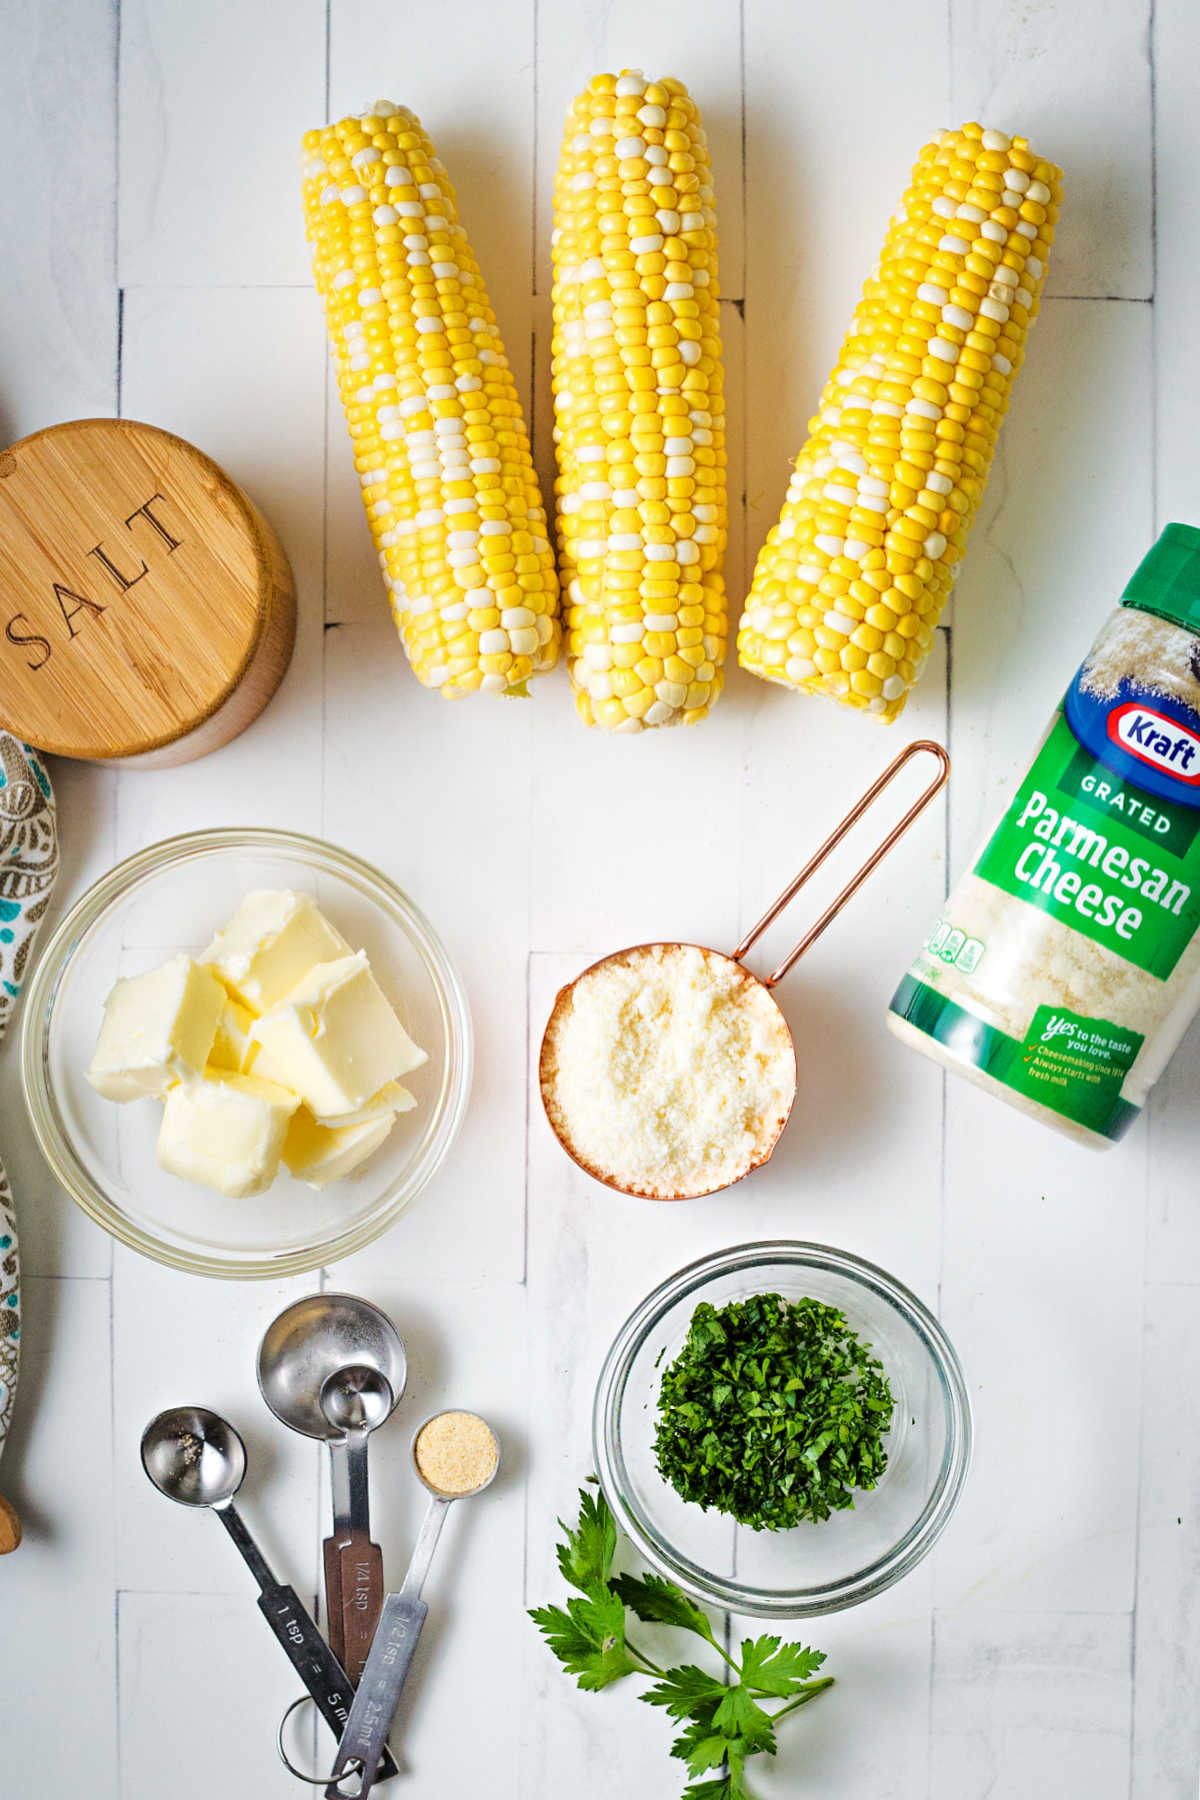 ingredients for grilled corn on a table: fresh ears of corn, softened butter, grated parmesan cheese, and freshly chopped parsley.